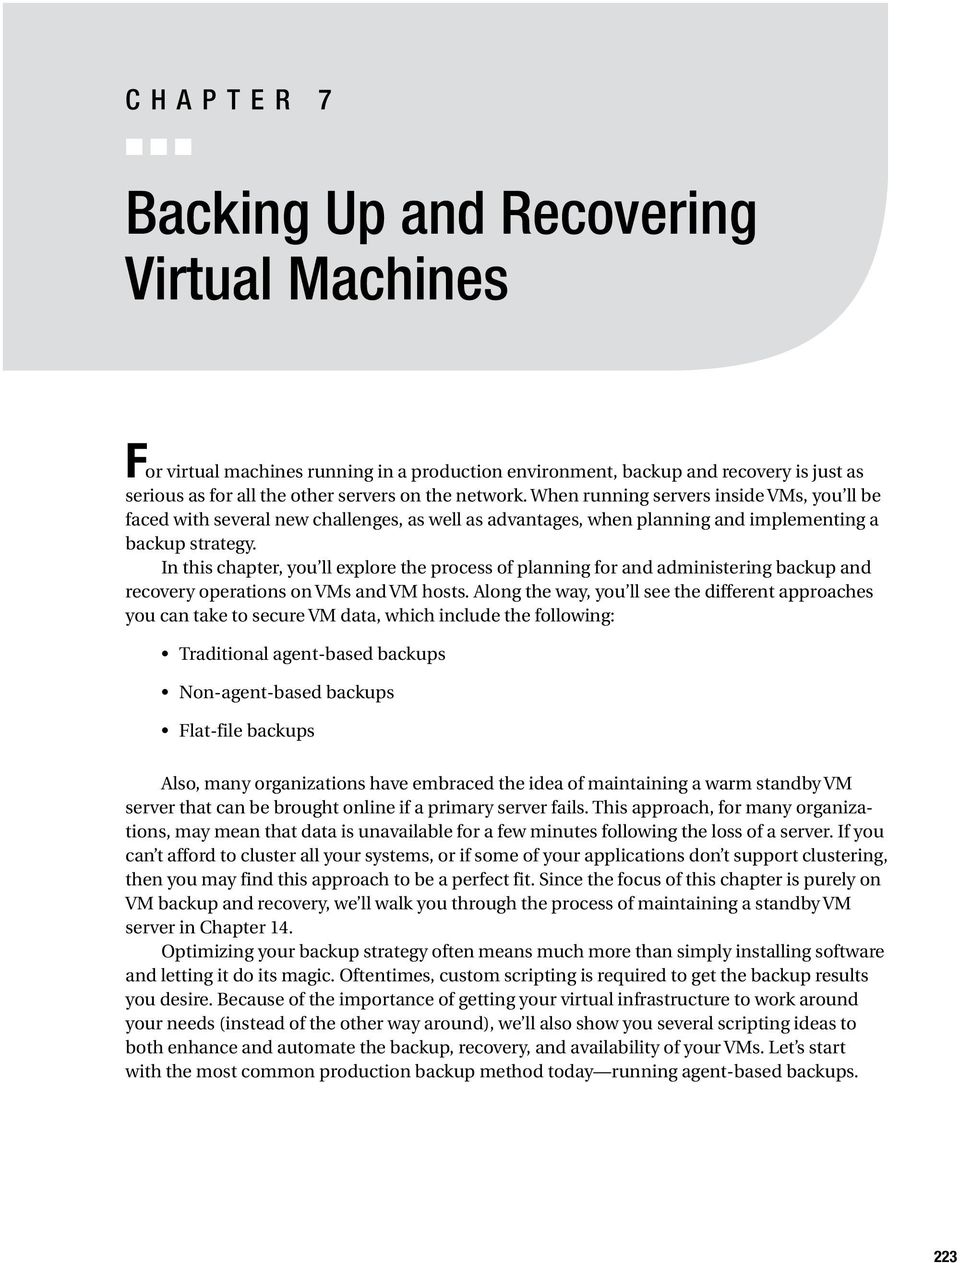 In this chapter, you ll explore the process of planning for and administering backup and recovery operations on VMs and VM hosts.